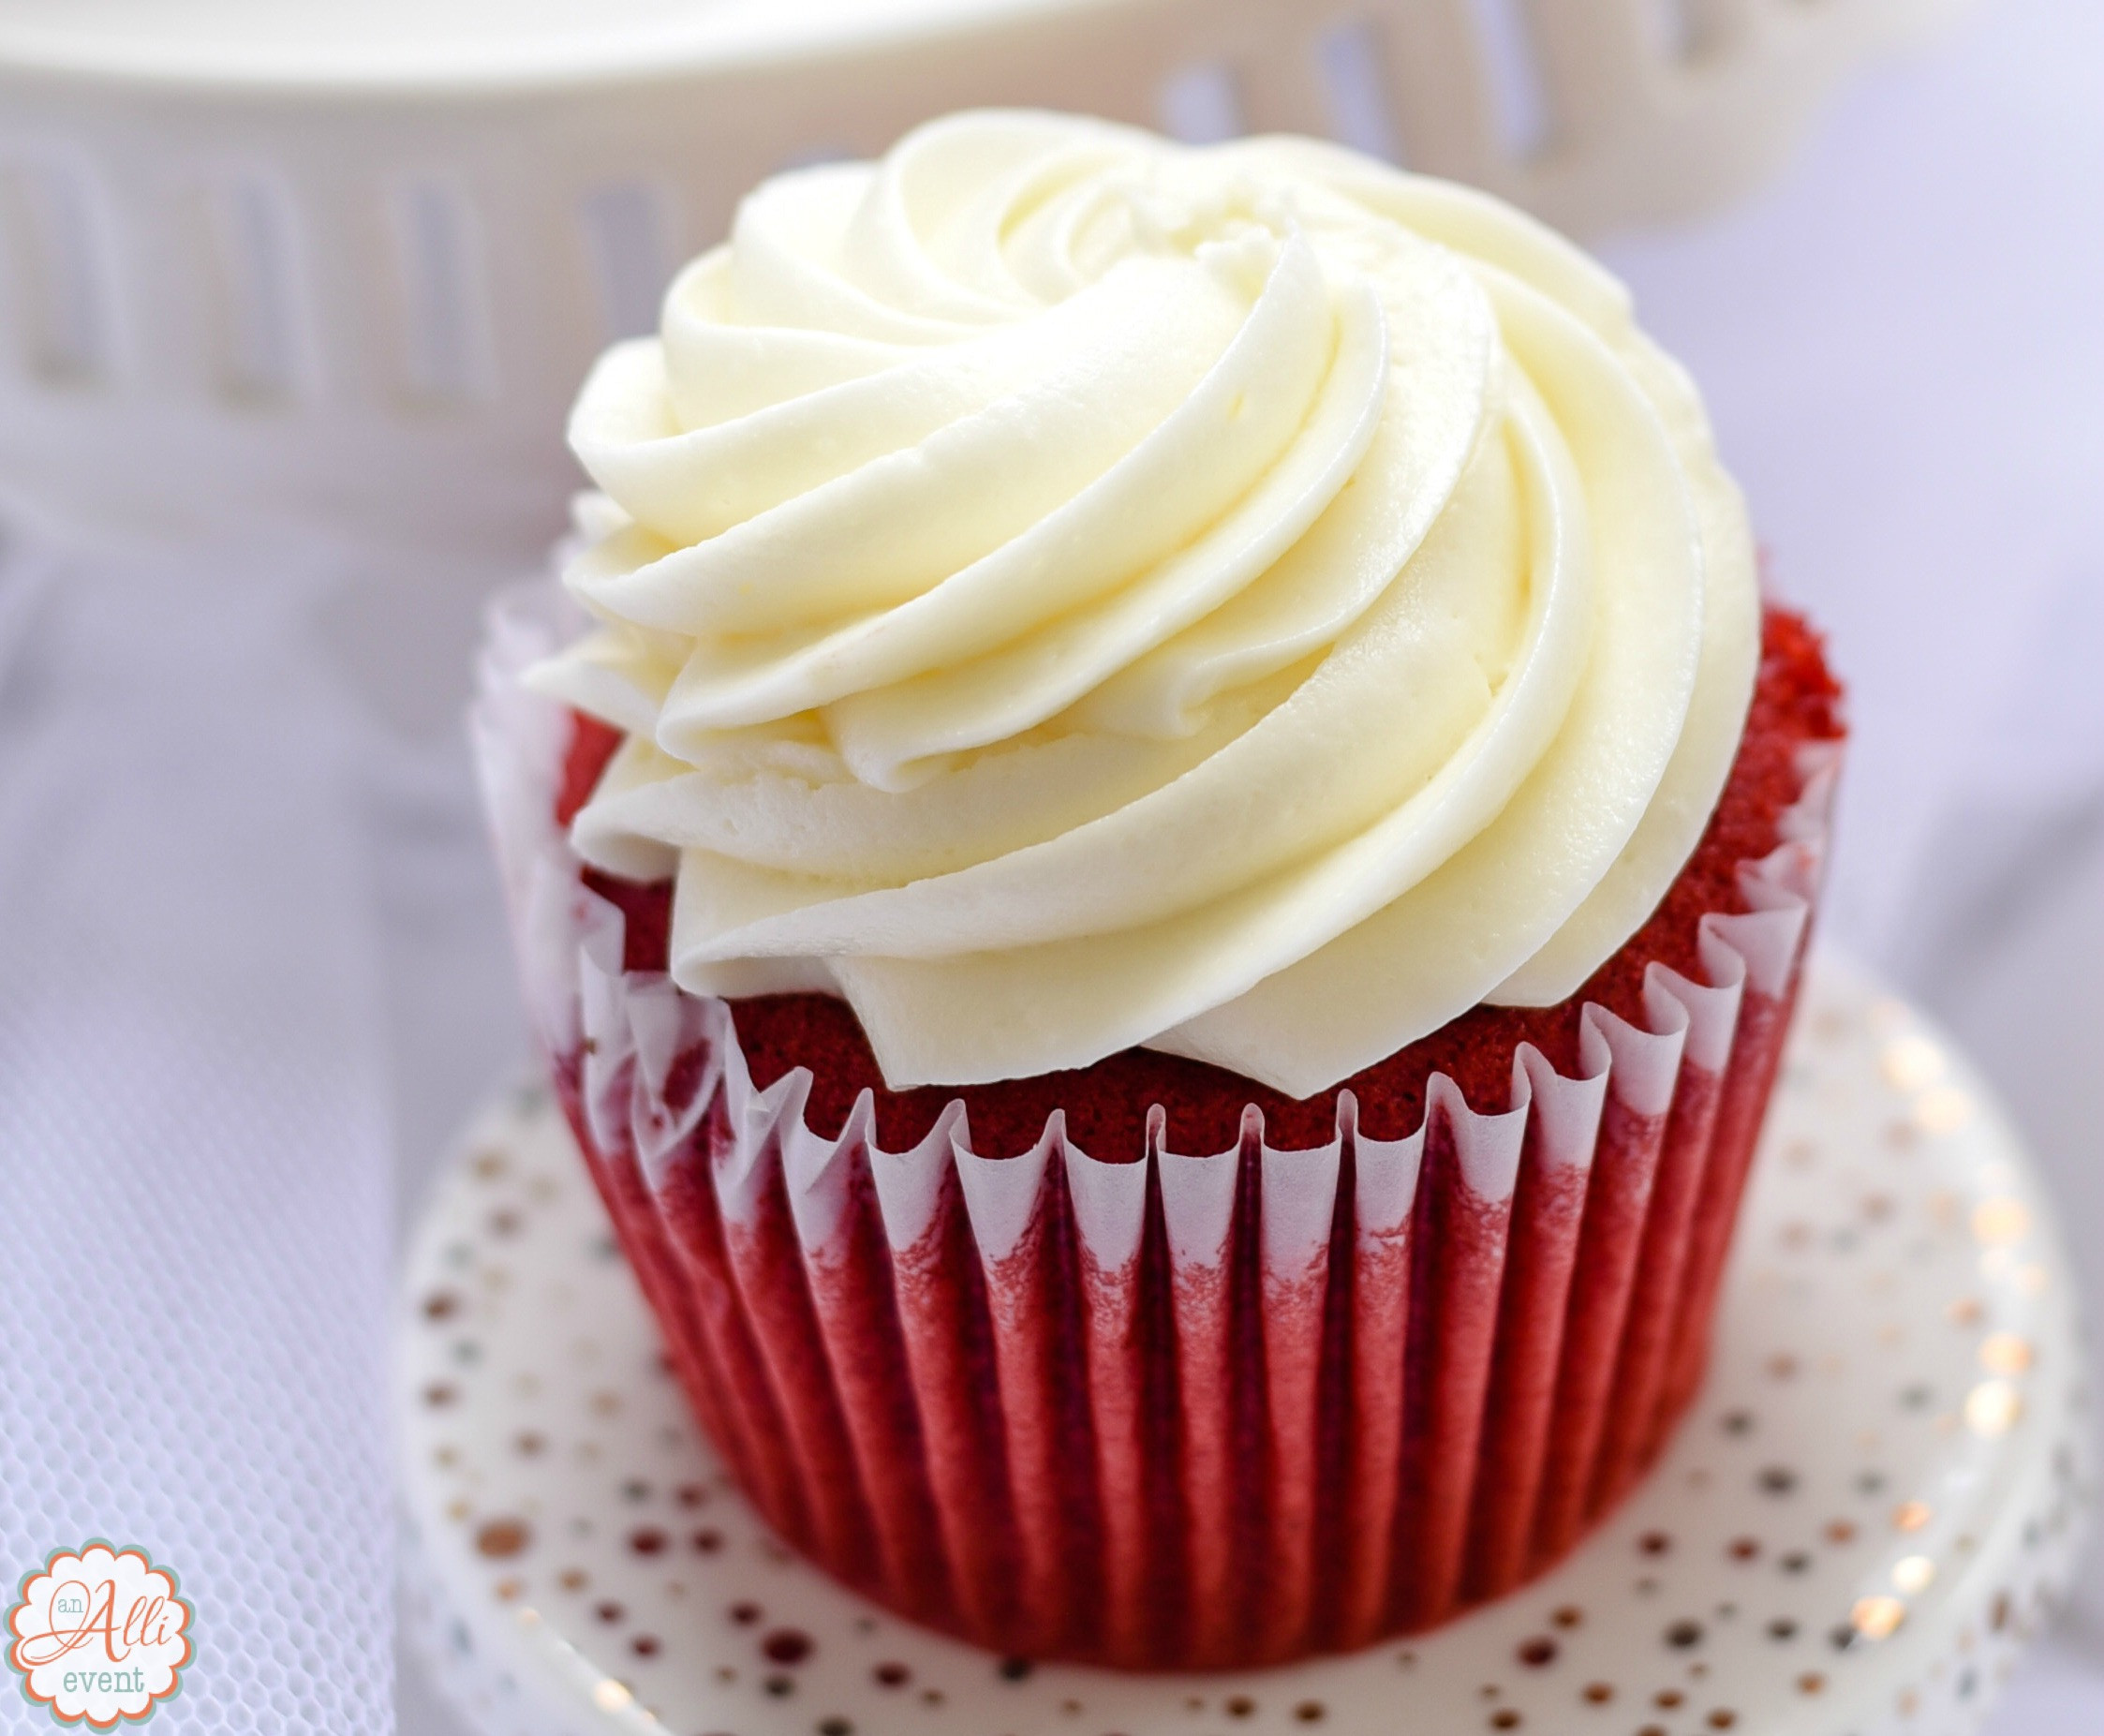 How To Make Cupcakes  How to Make Amazing Red Velvet Cupcakes An Alli Event